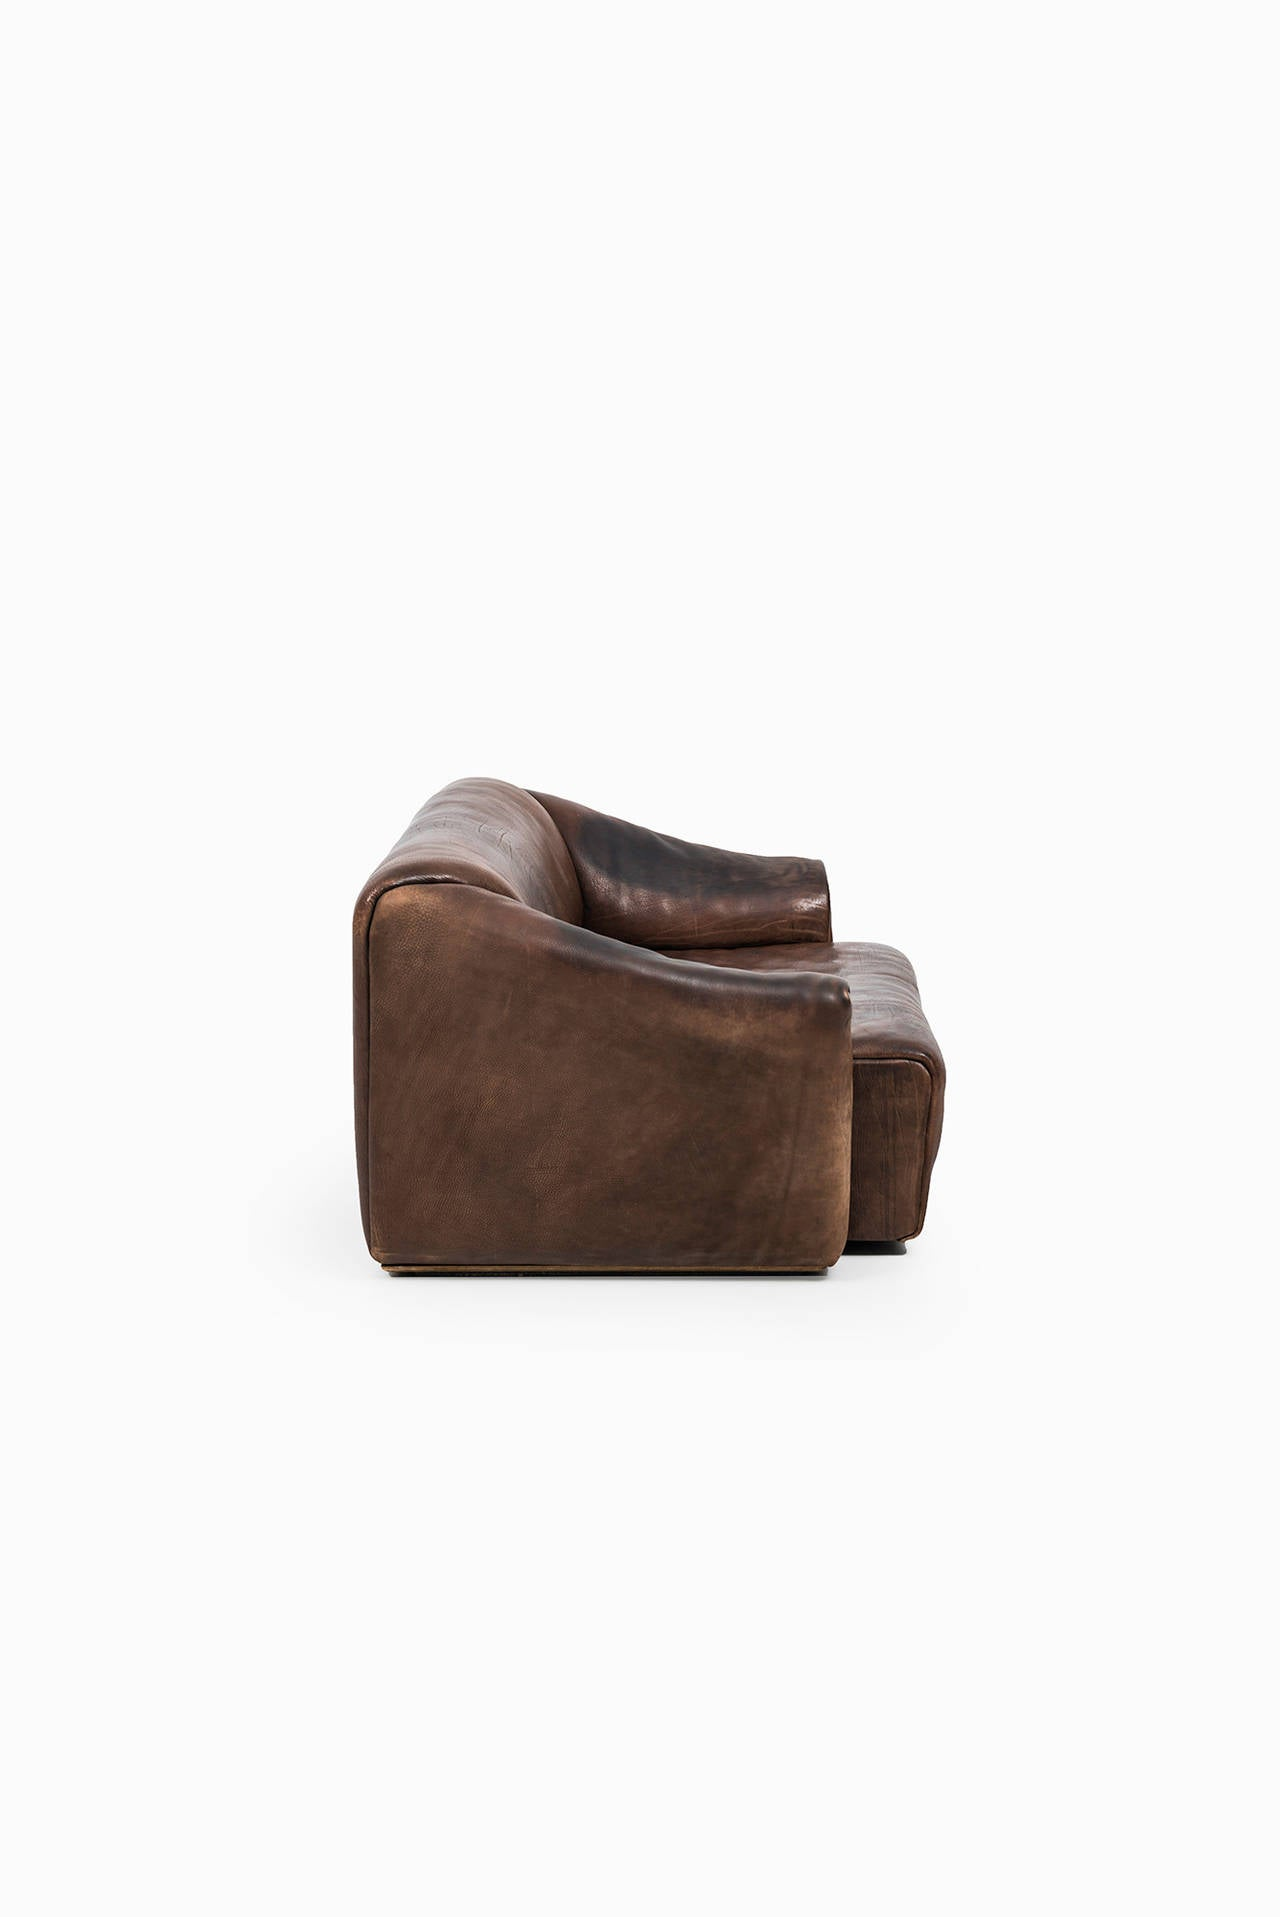 Leather De Sede Sofa and Easy Chair Model DS-47 by De Sede in Switzerland For Sale